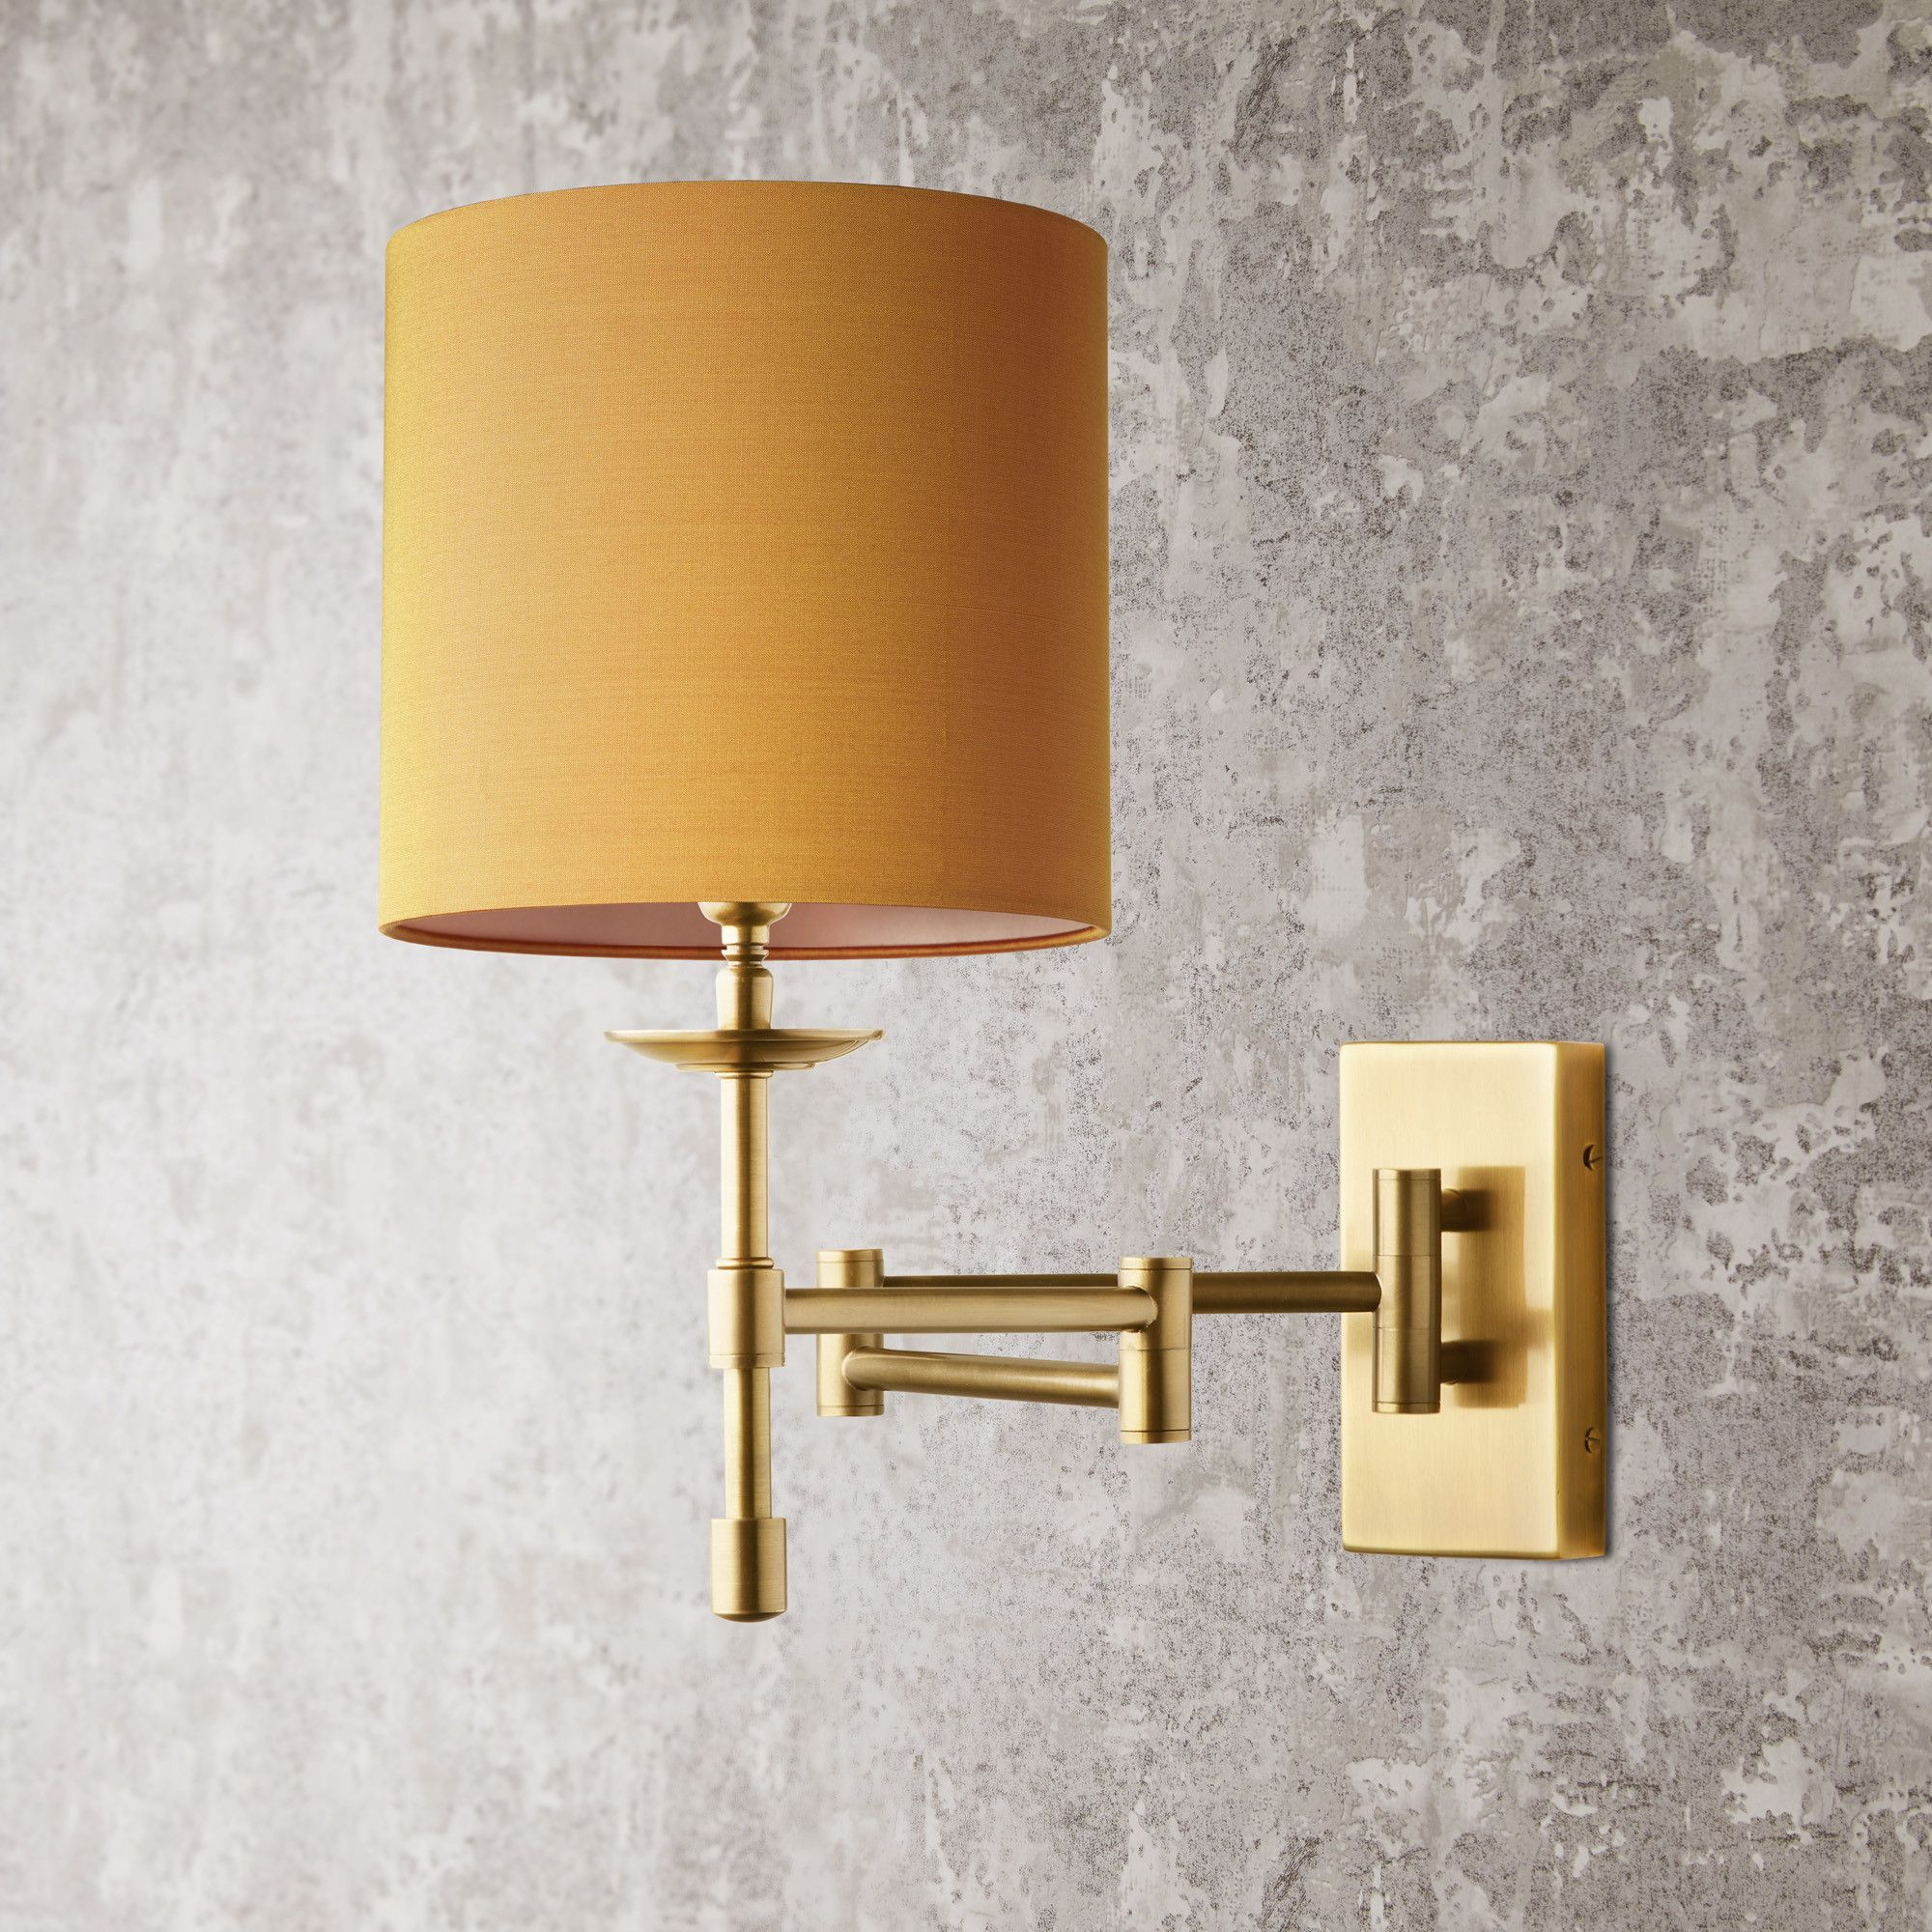 Three Fold Wall Fitting In Antique Brass With 18cm Drum Shade In Saffron Dupion Silk In 2020 Wall Lights Hall Lighting Drum Shade